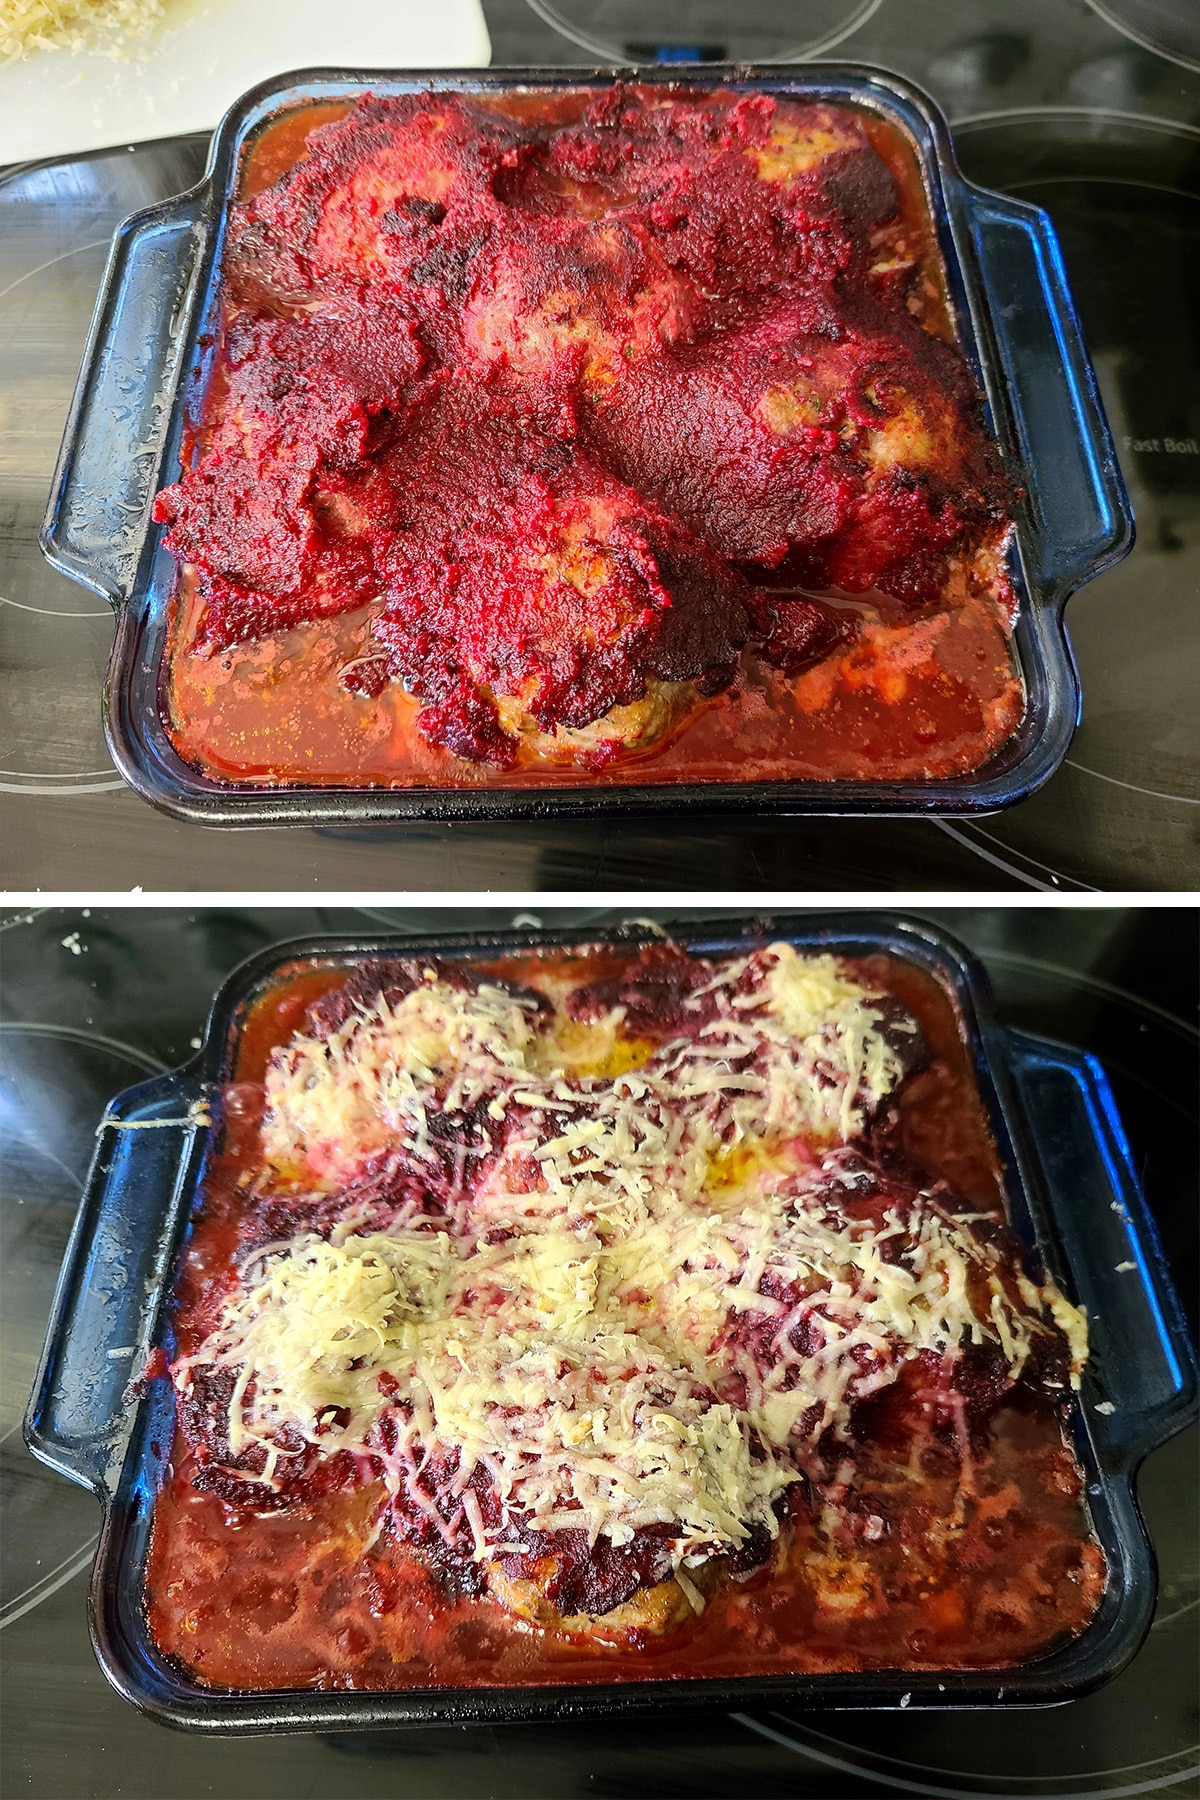 A baked pan of individual meatloaves, before and after adding cheese on top.